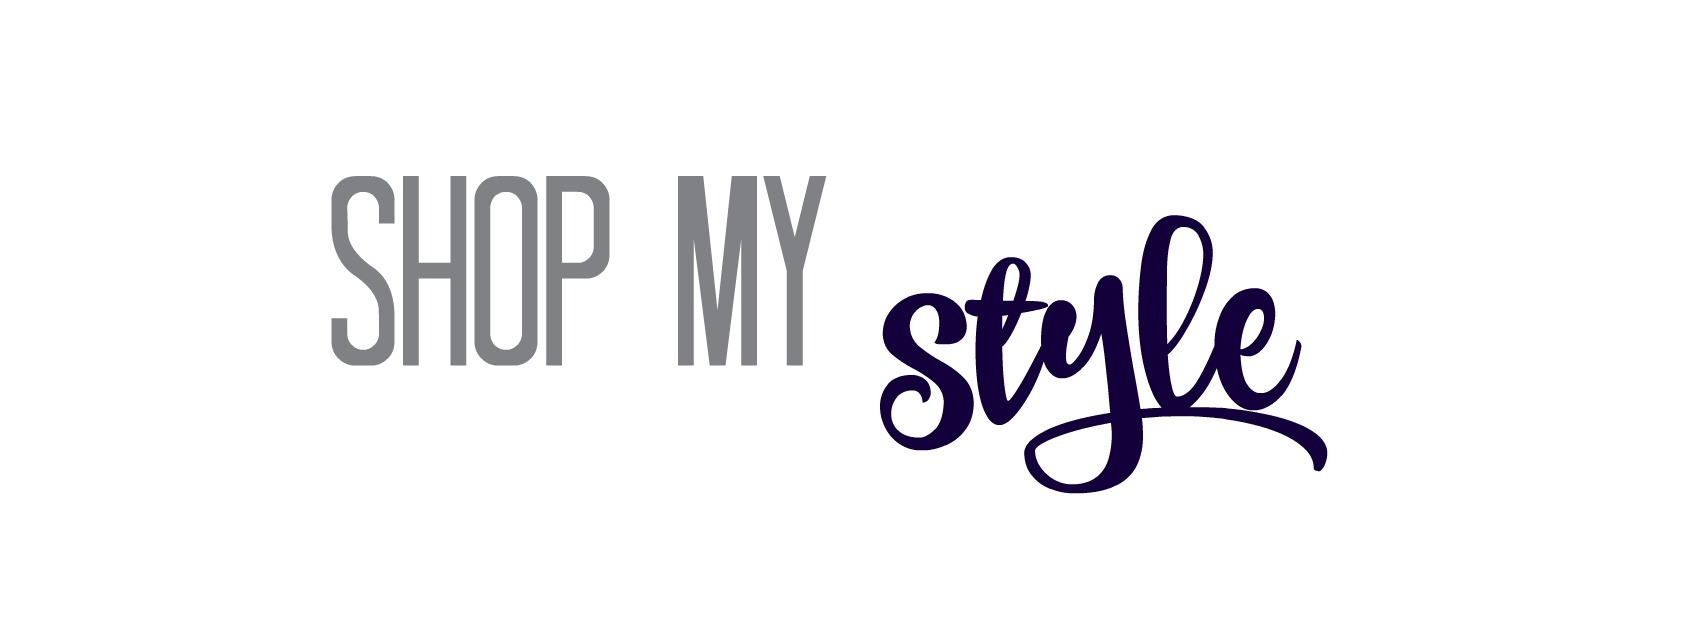 Shop my style cover photo